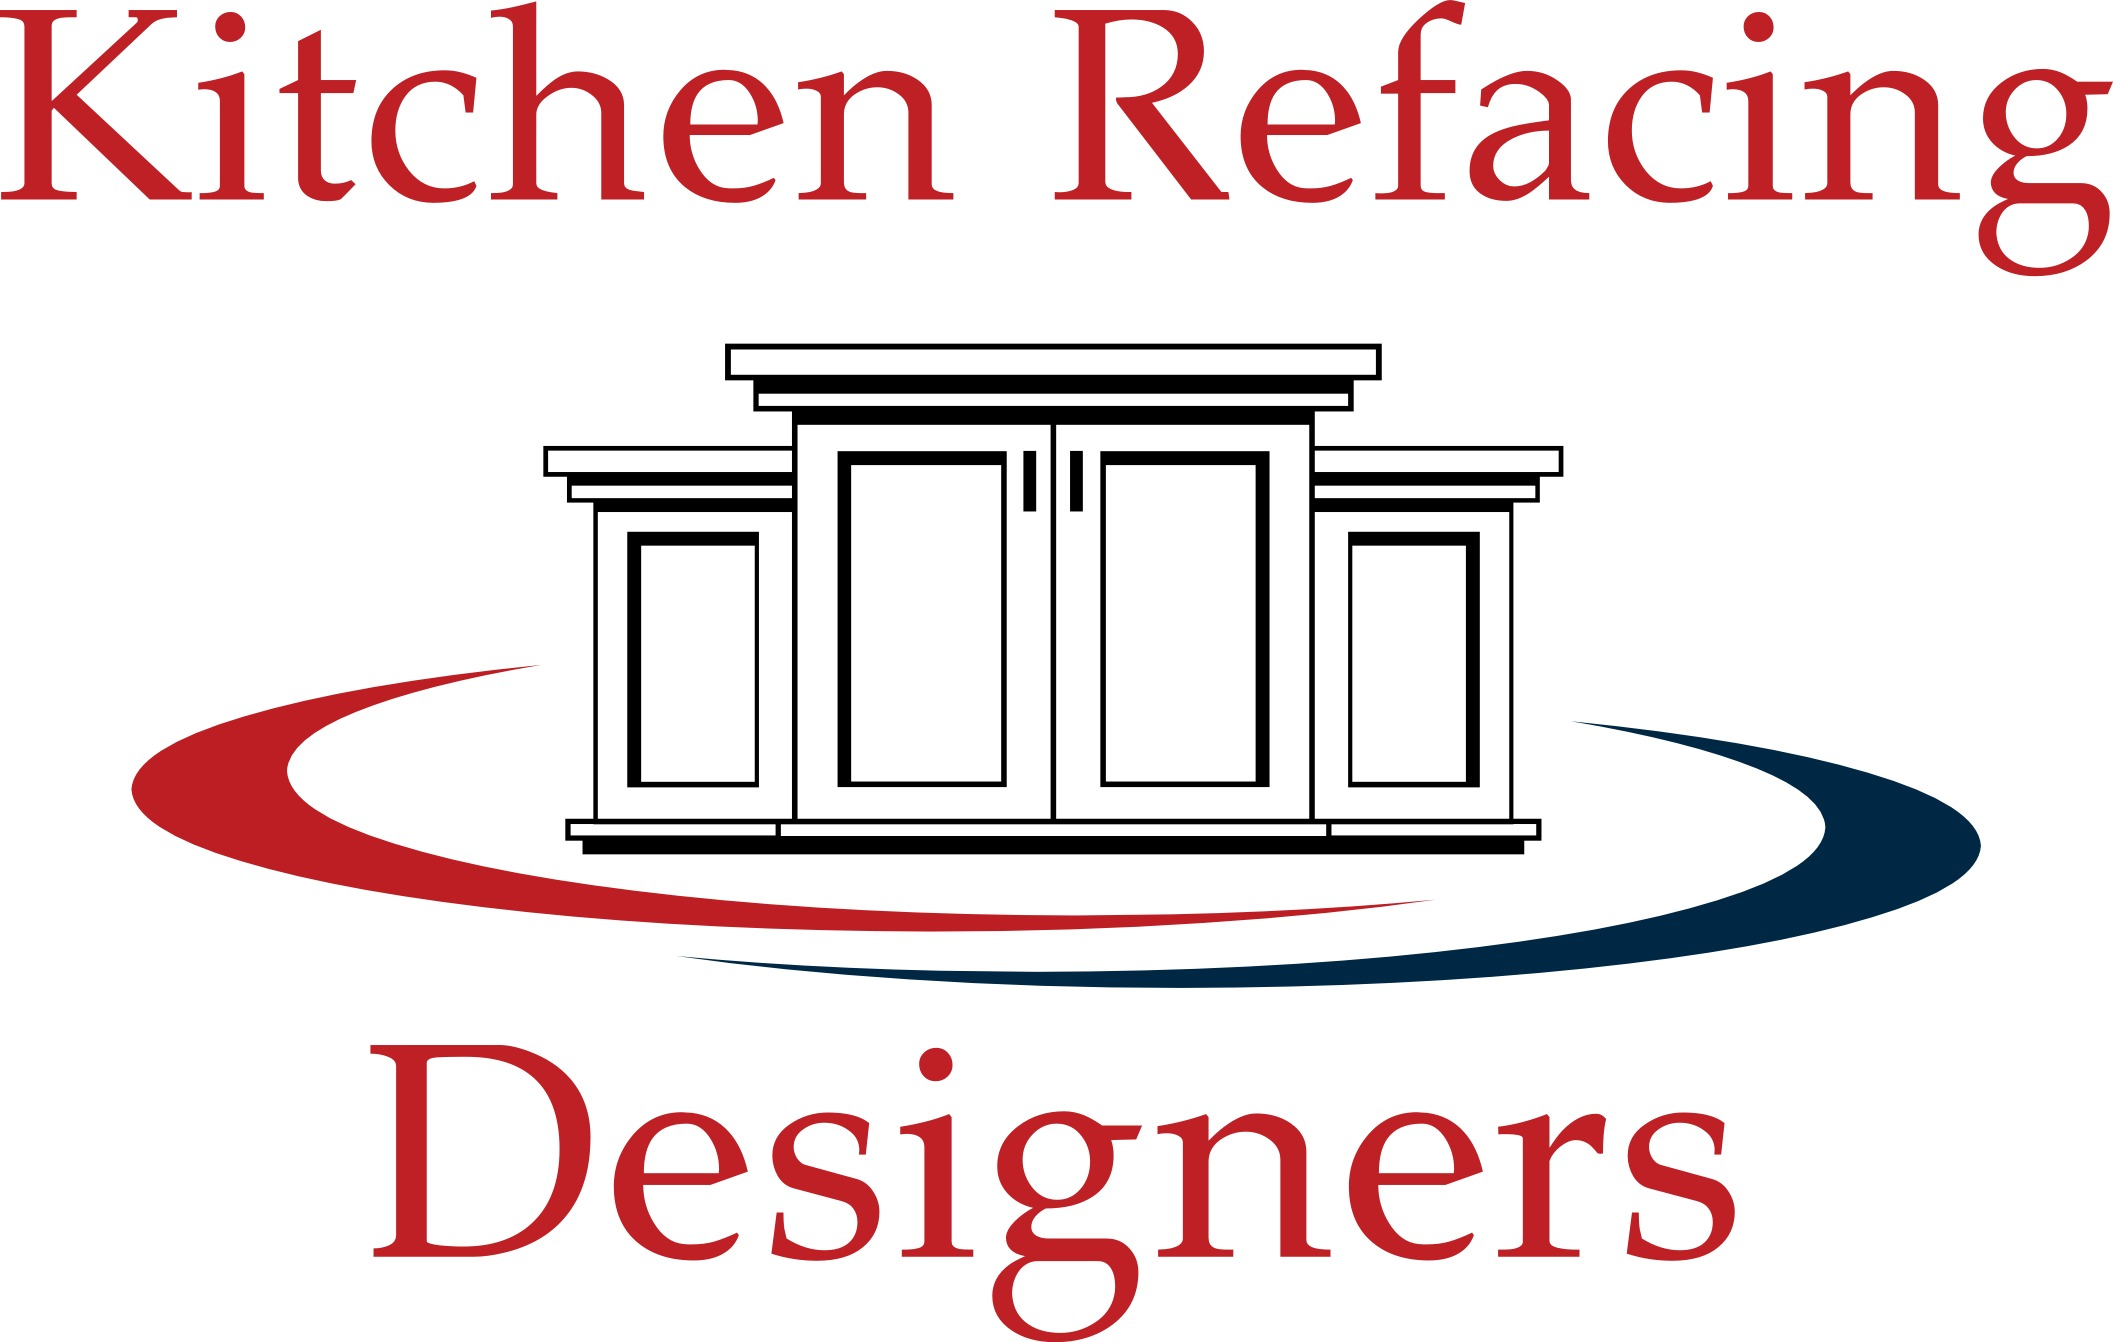 Kitchen Refacing Designers, LLC logo